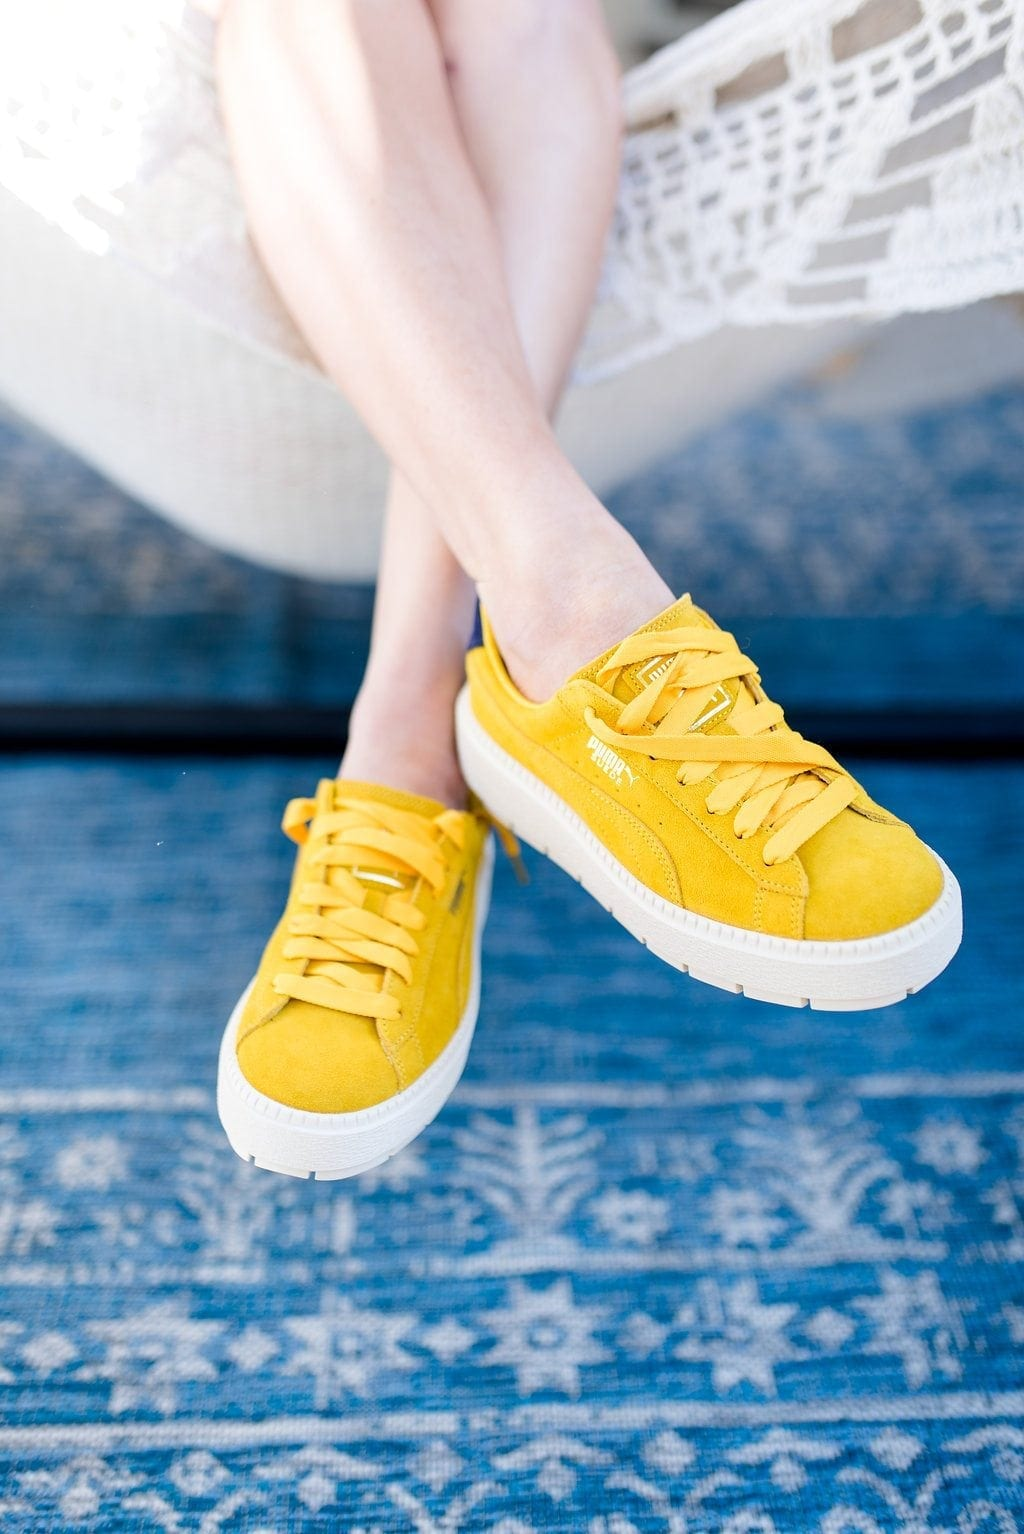 Yellow tennis shoes. Platform sneakers with yellow laces.